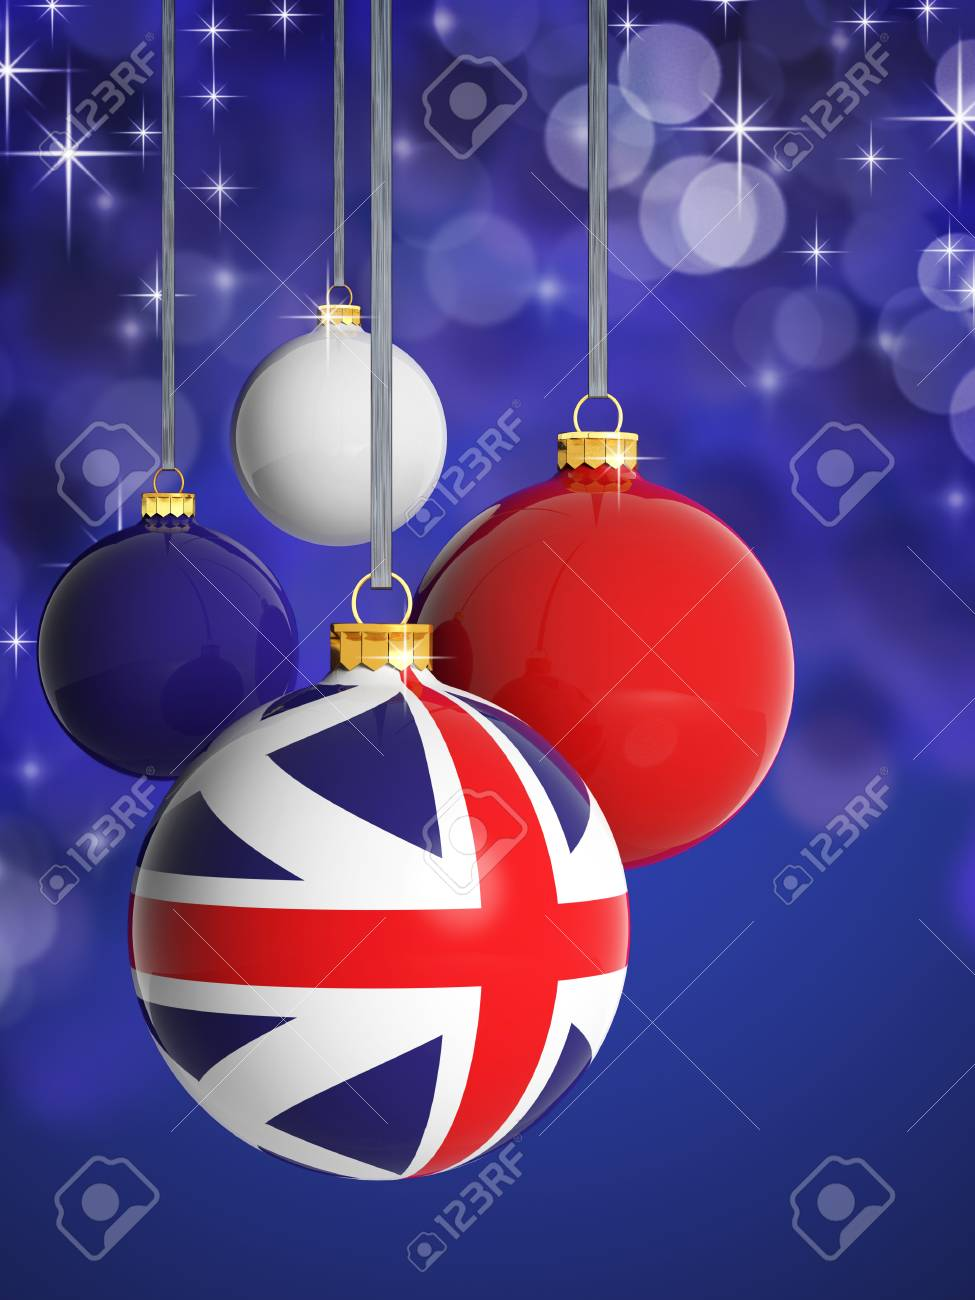 United Kingdom Christmas.Christmas Balls With United Kingdom Flag In Front Of Lights Background